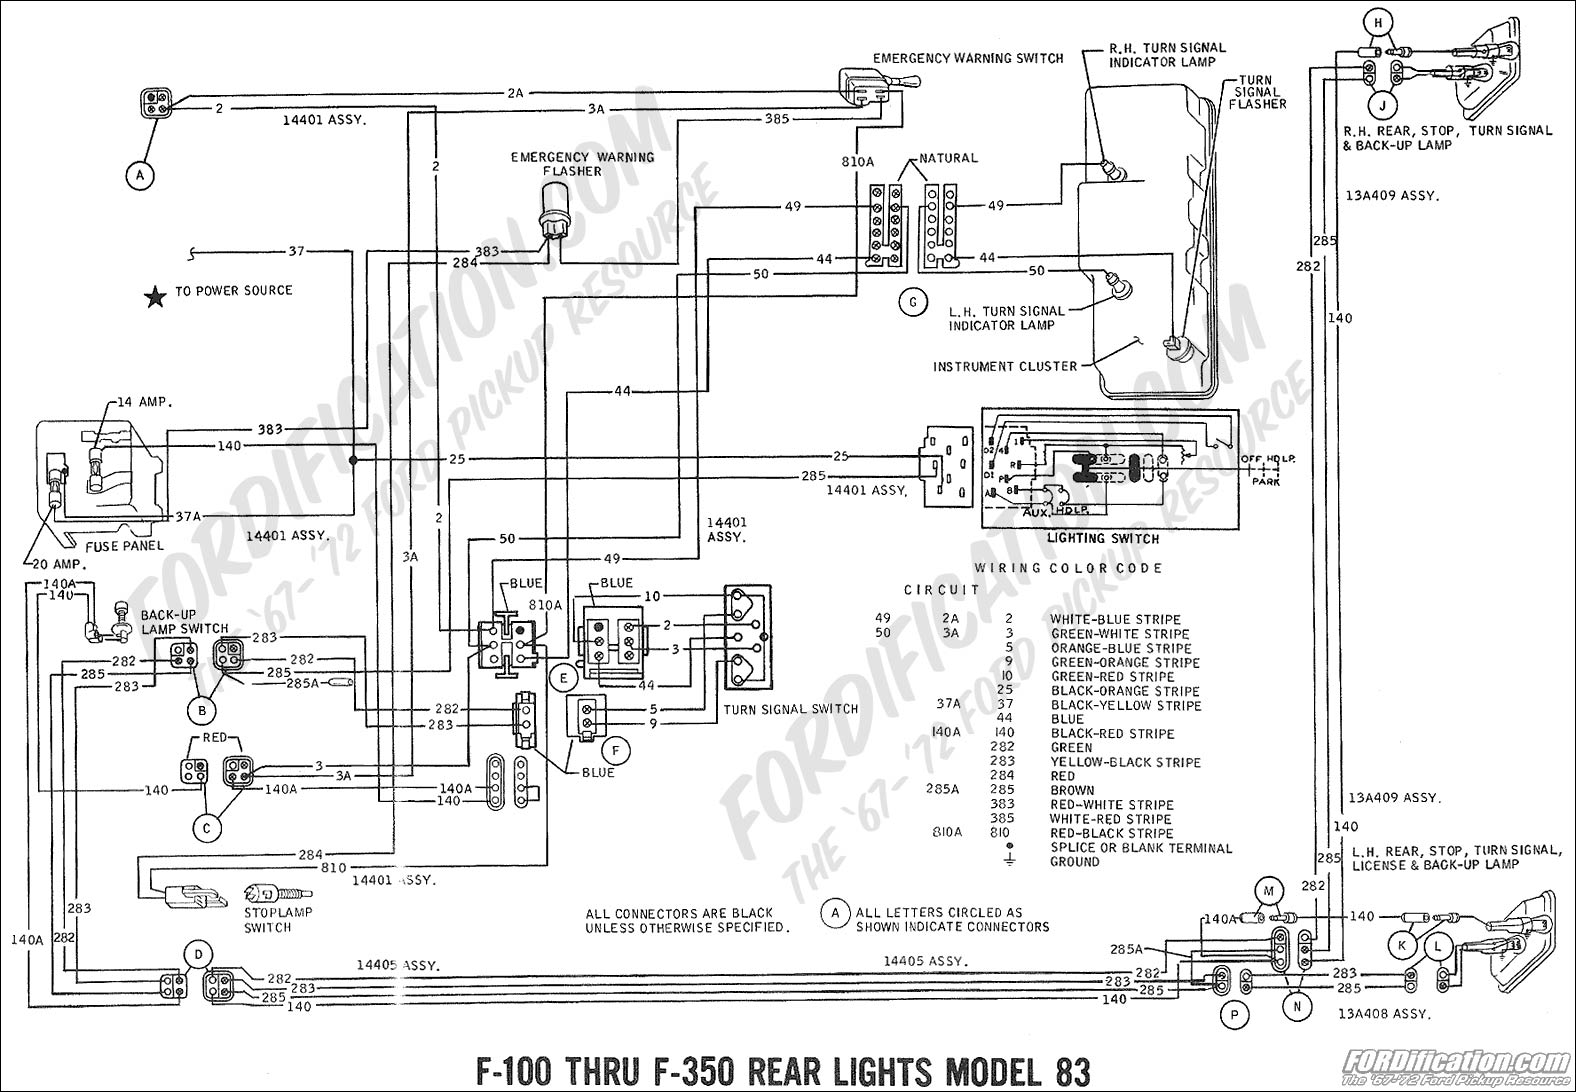 1981 Ford Truck Fuse Box Reinvent Your Wiring Diagram 2003 Econoline Van 1977 F100 Fuel System Example Electrical U2022 Rh Emilyalbert Co 97 F 150 99